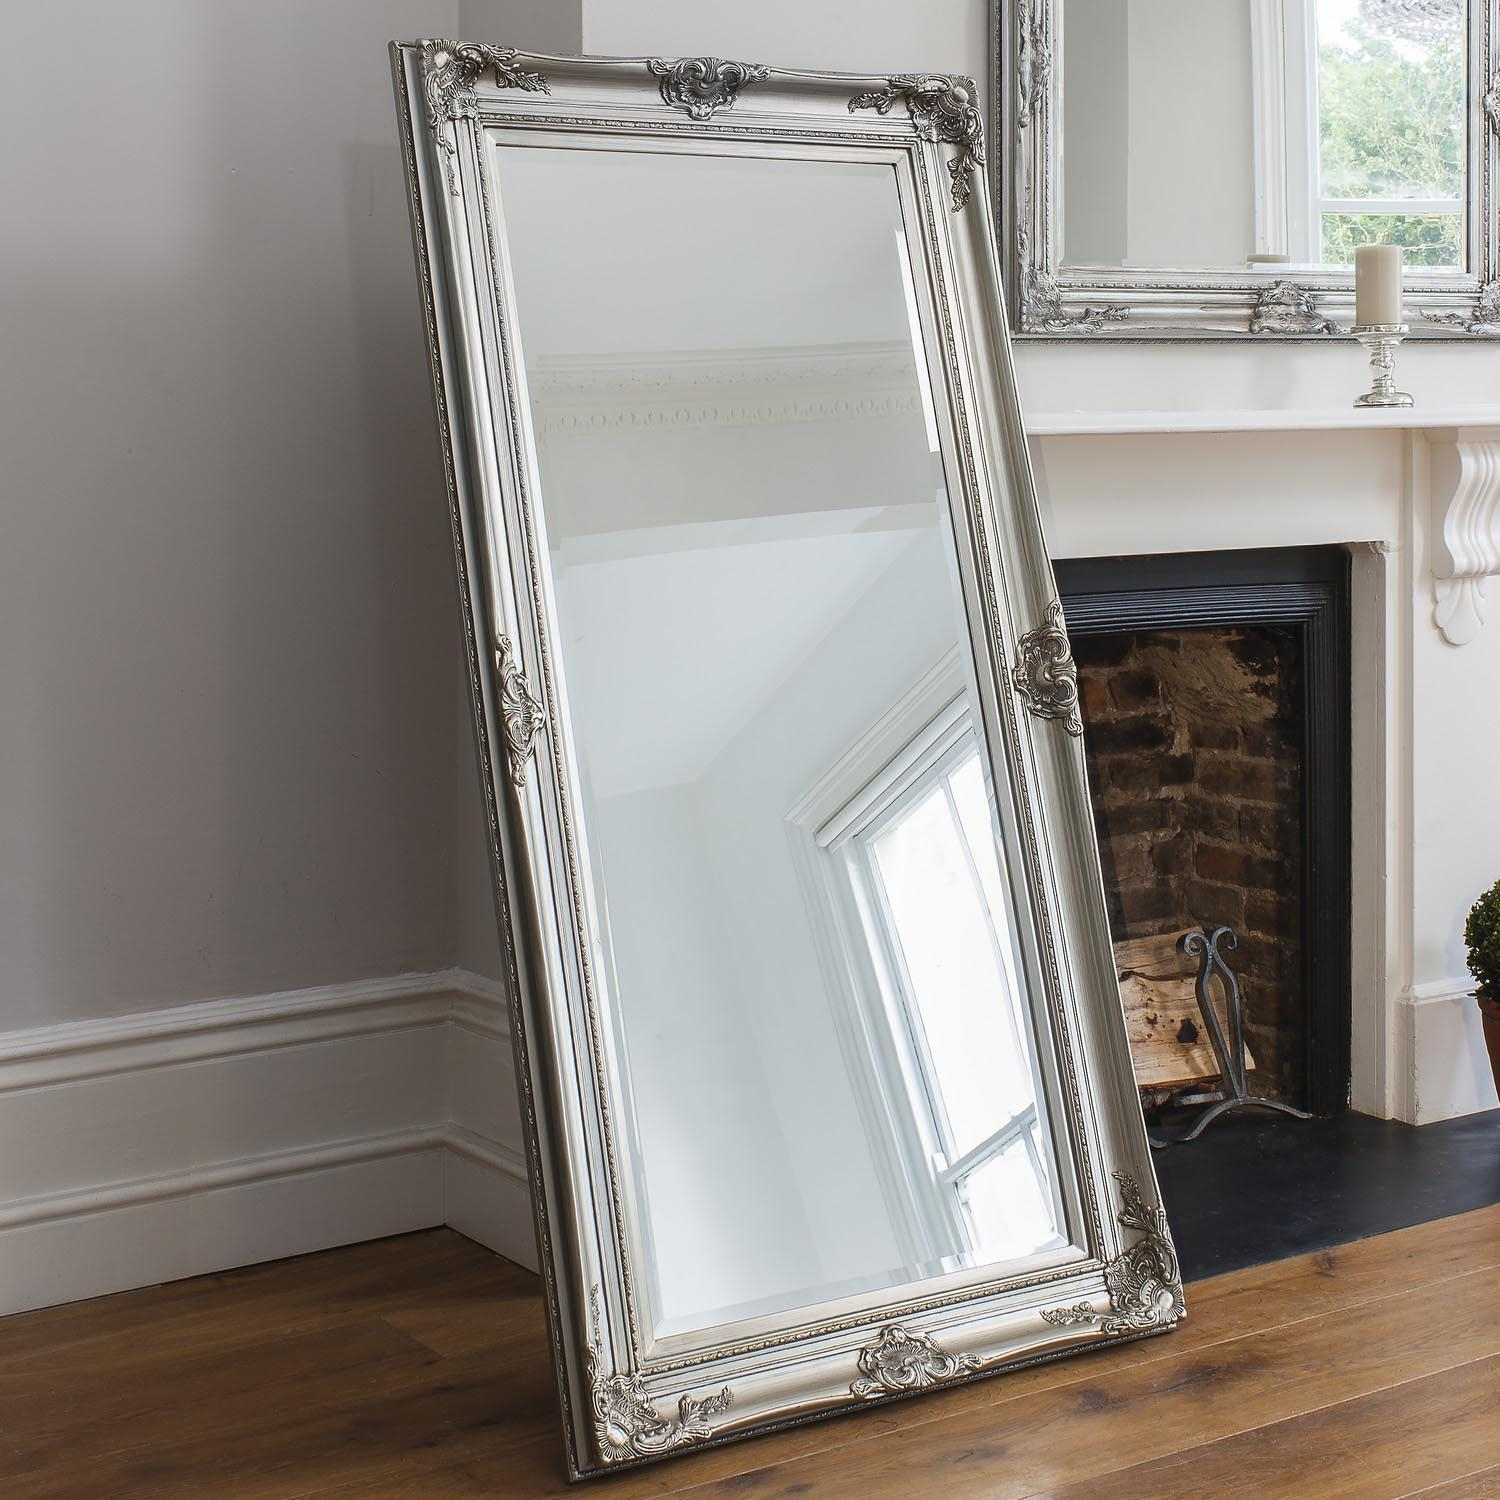 Extra Large Floor Standing Mirrors | Floor Decoration Throughout Ceiling Mirrors For Sale (Image 8 of 20)